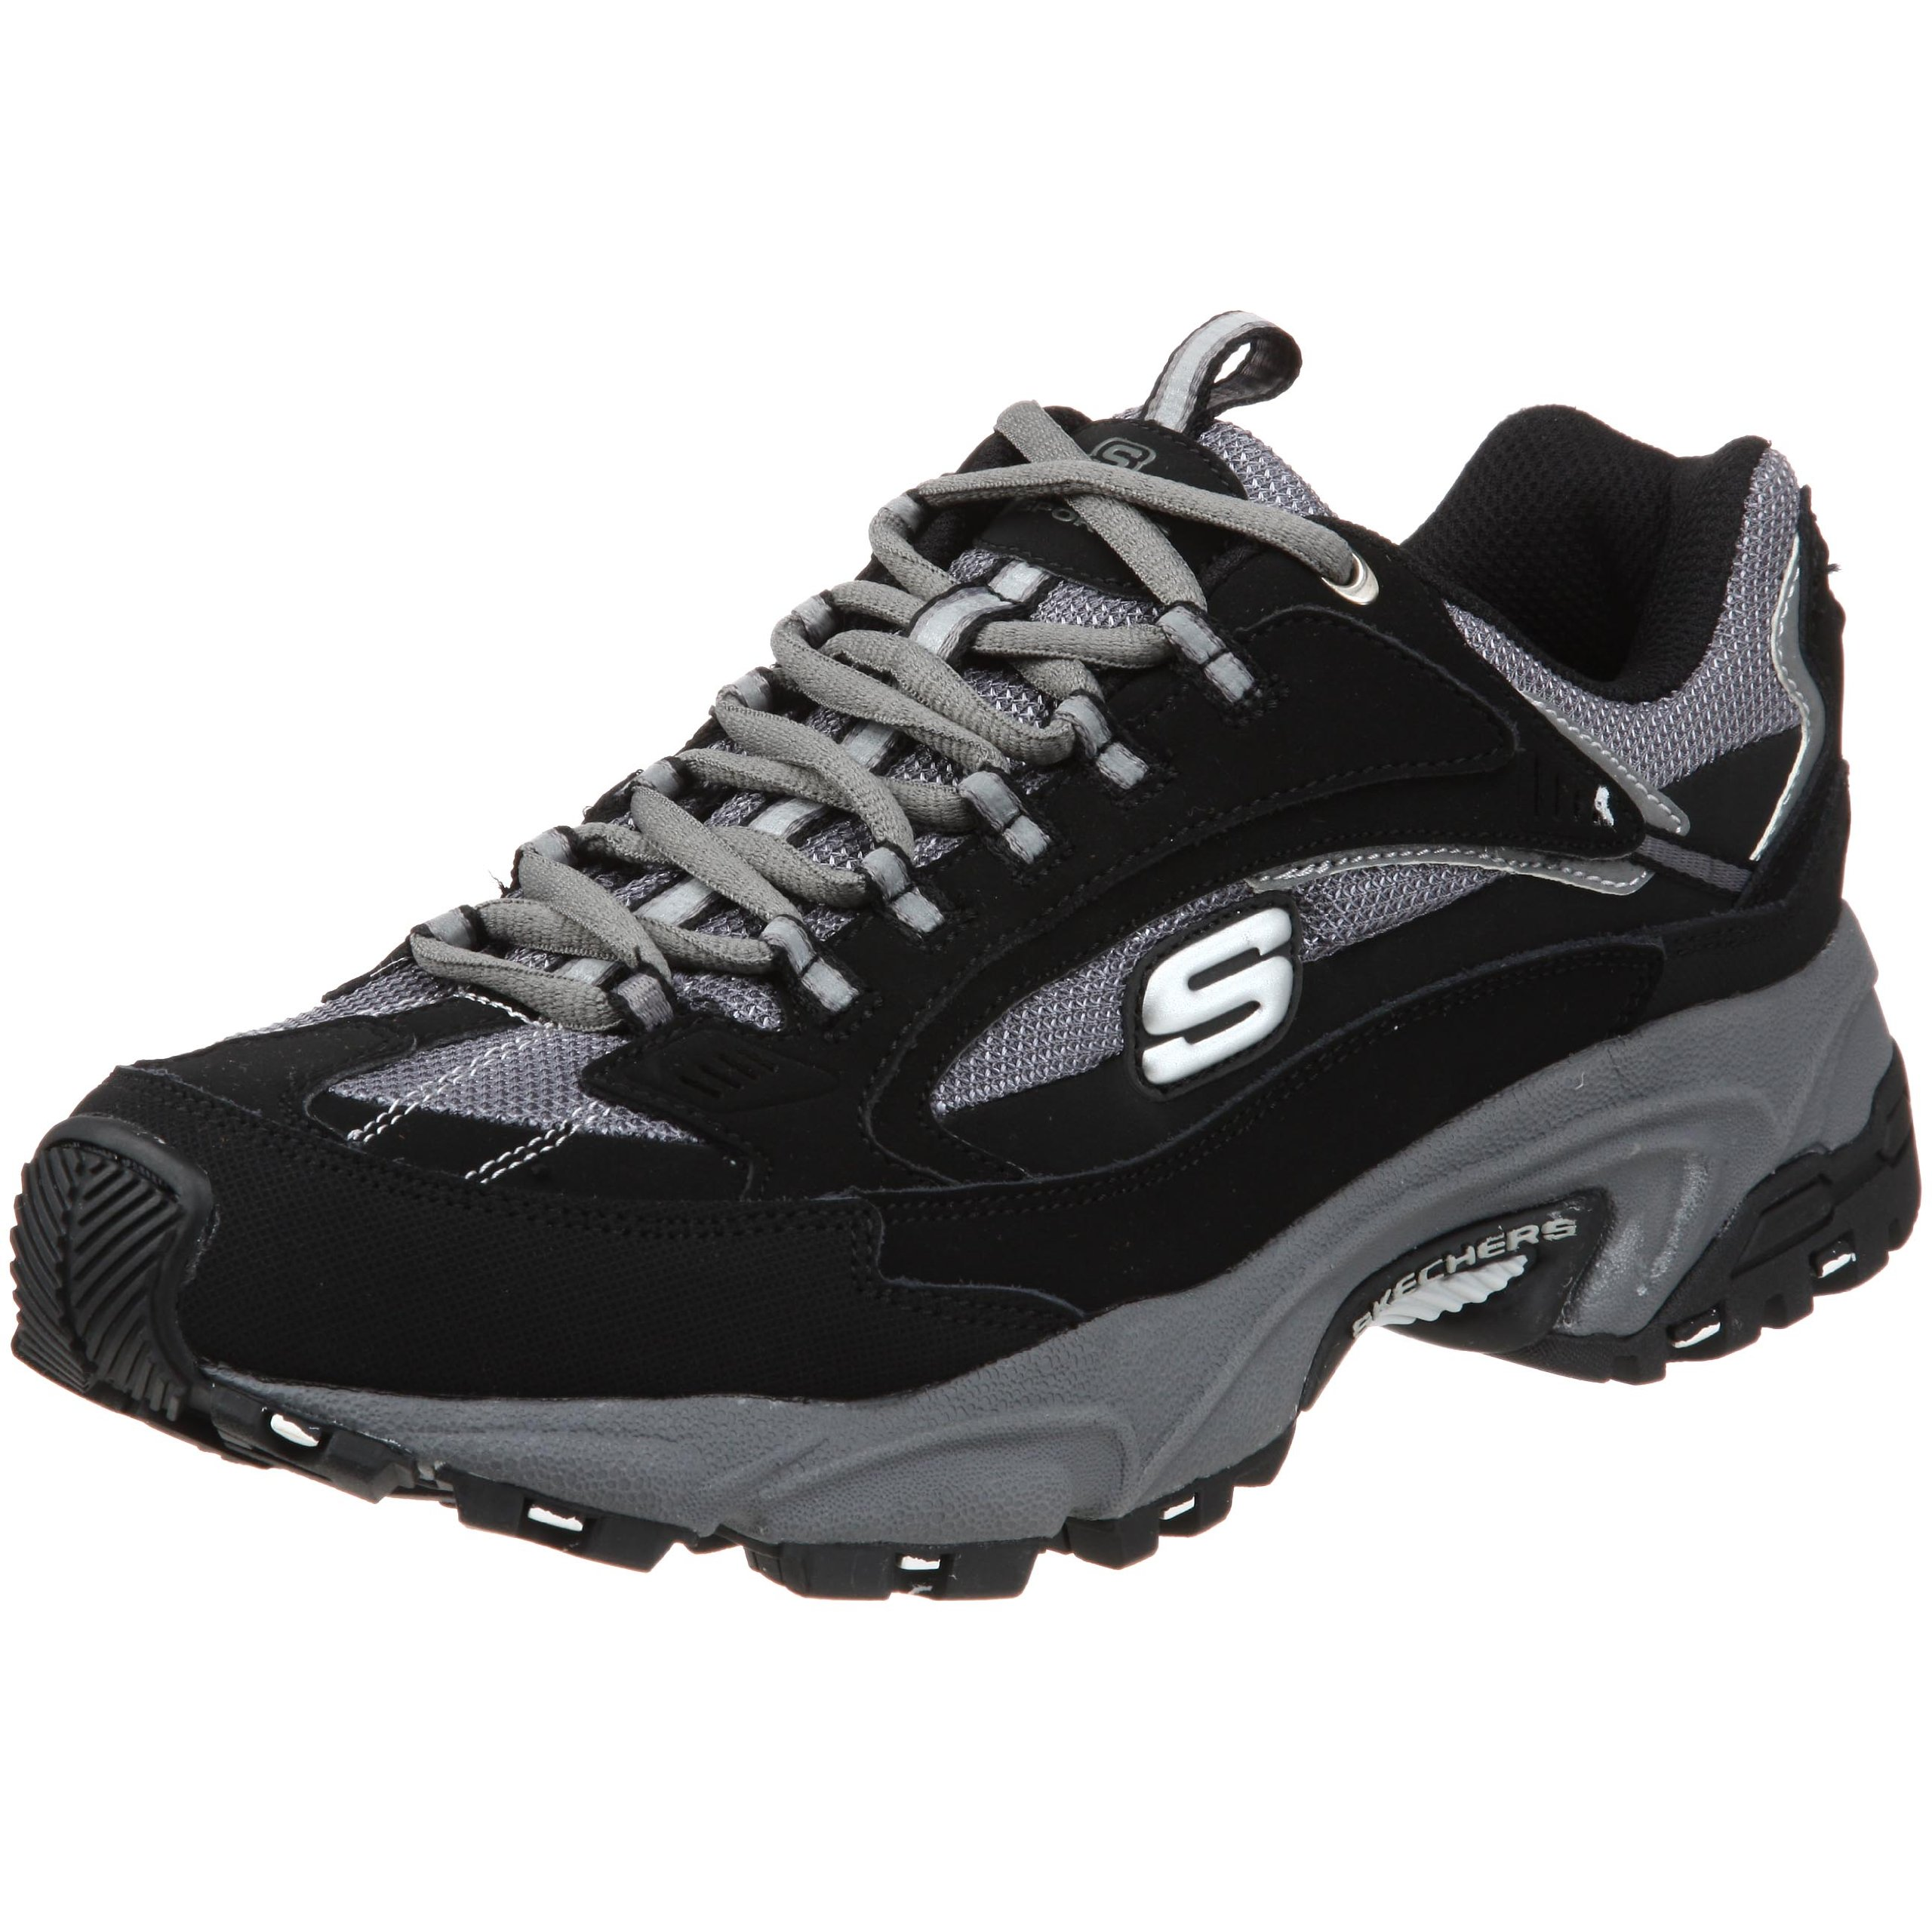 354178083b23 Galleon - Skechers Sport Men s Stamina Nuovo Cutback Lace-Up Sneaker ...